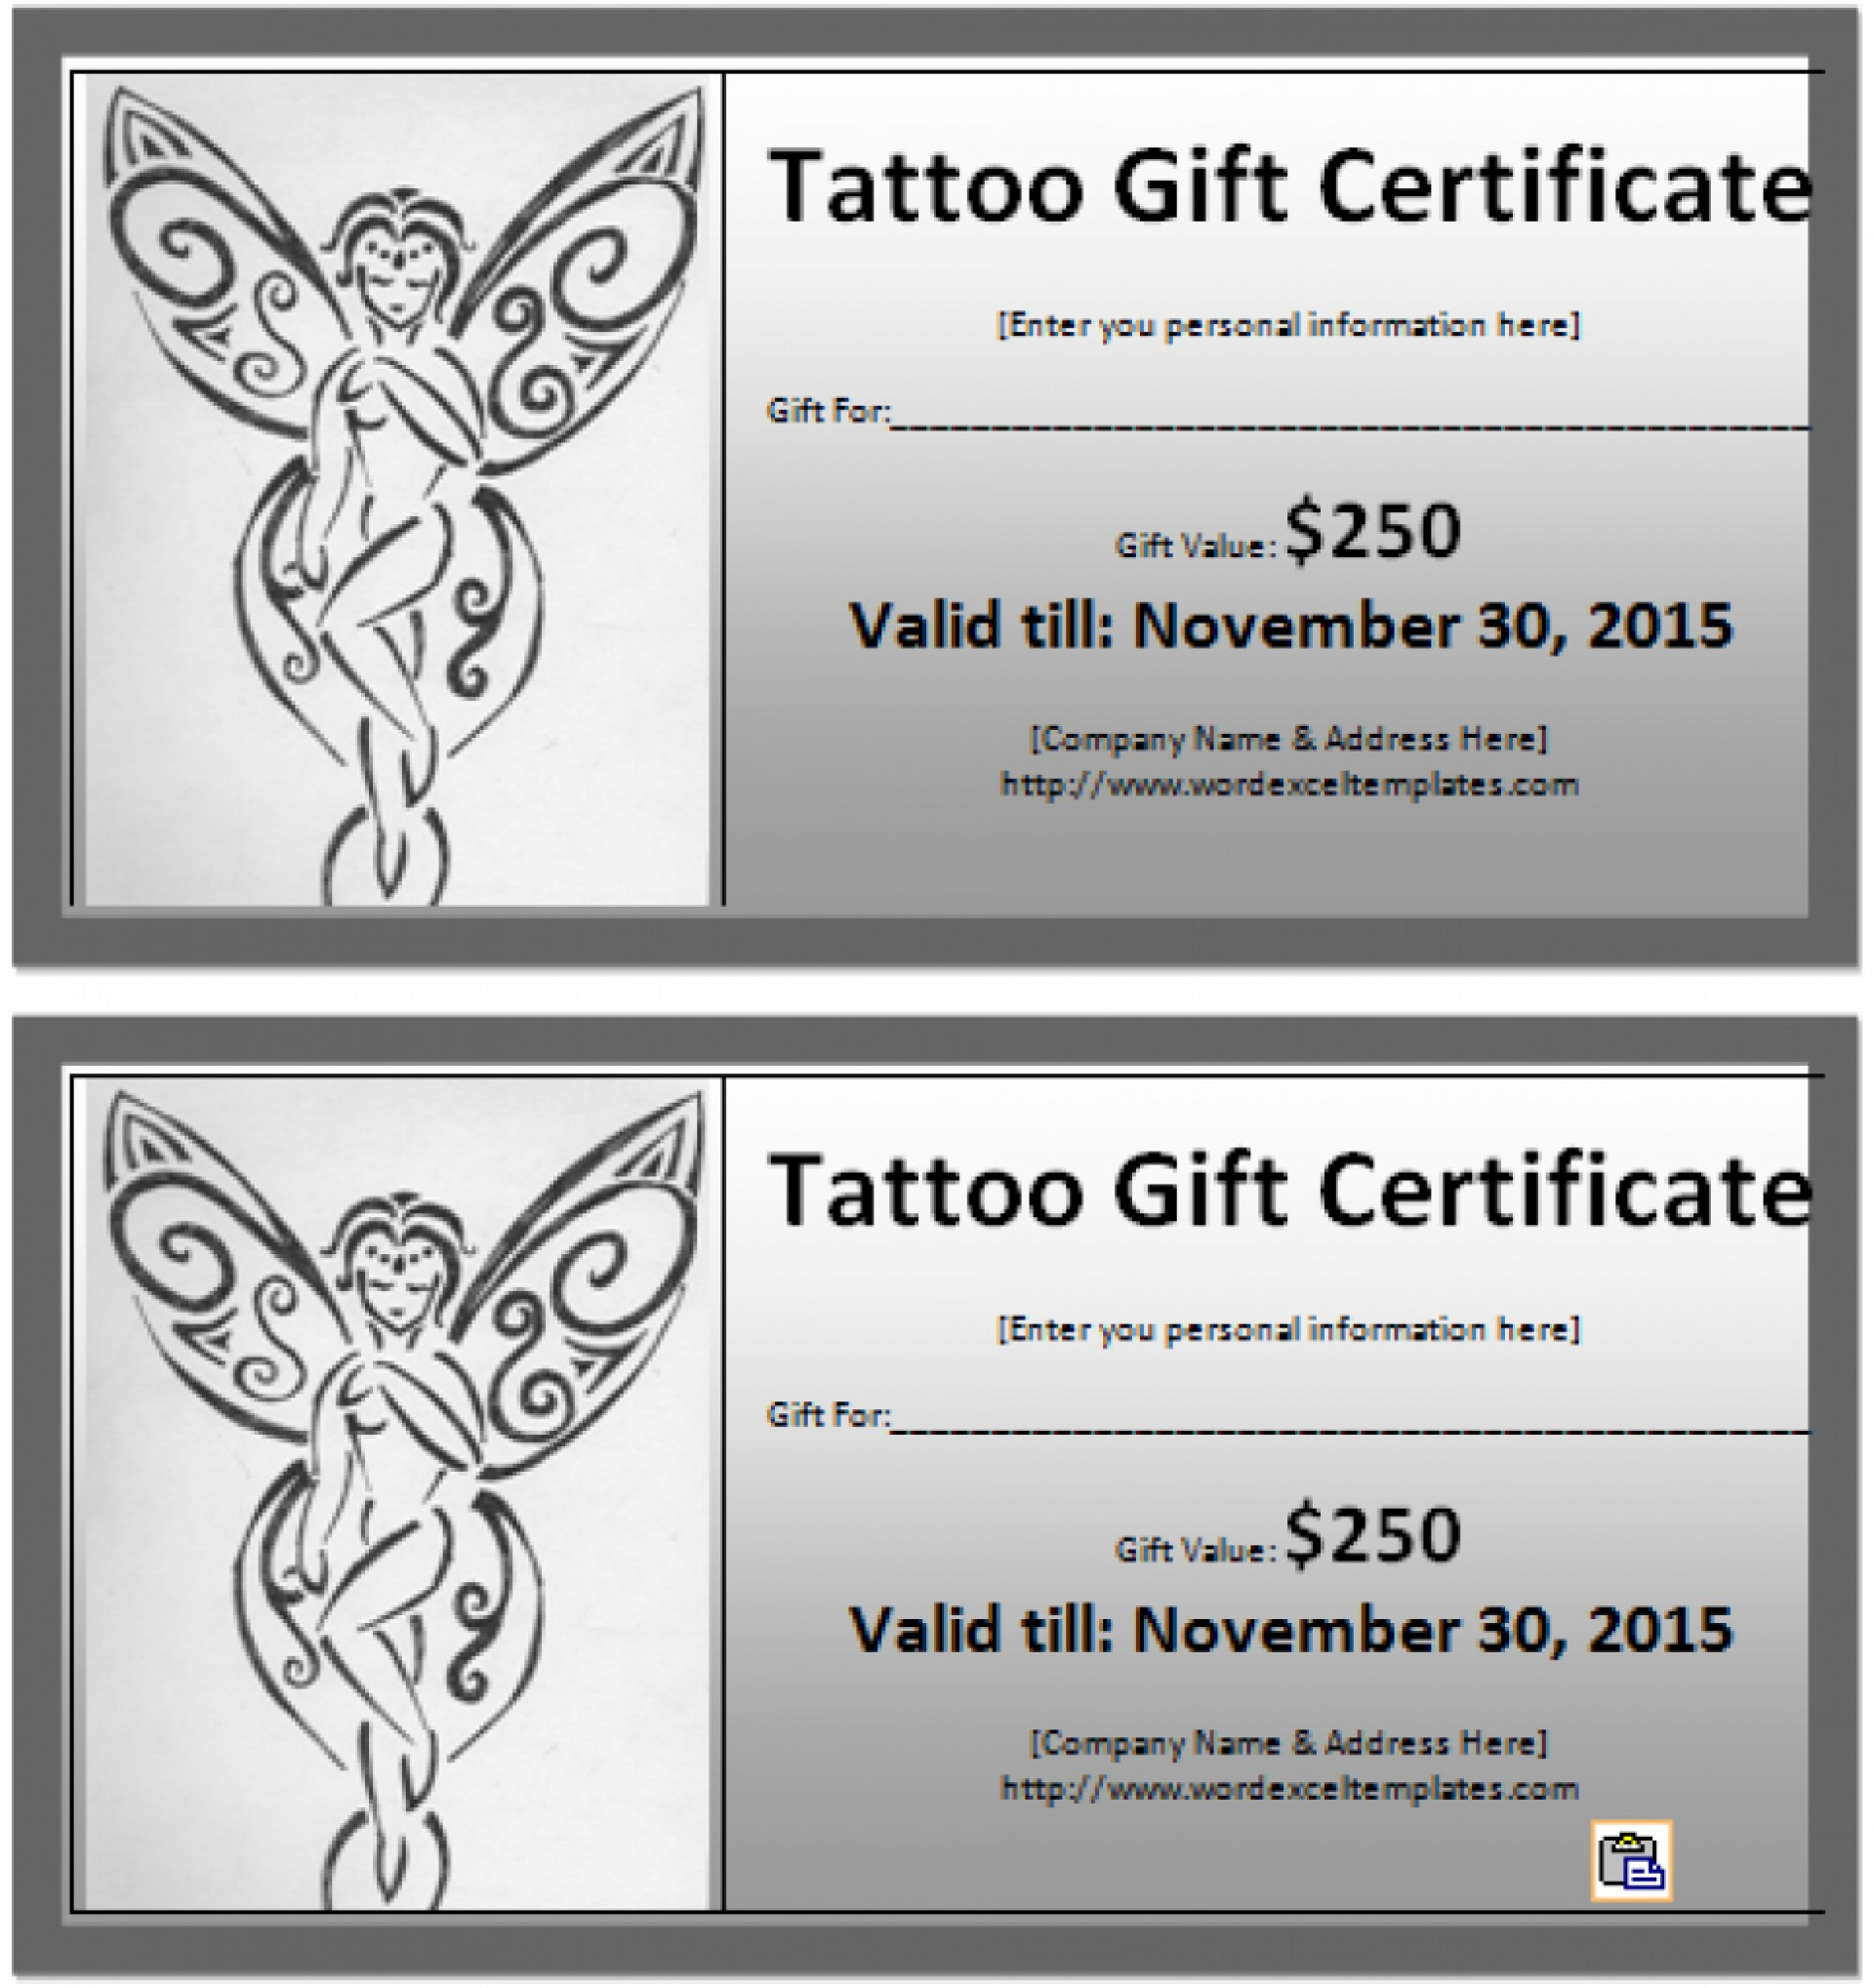 031 Free Printable Gift Certificates Restaurant Ideas Model In Tattoo Gift Certificate Template